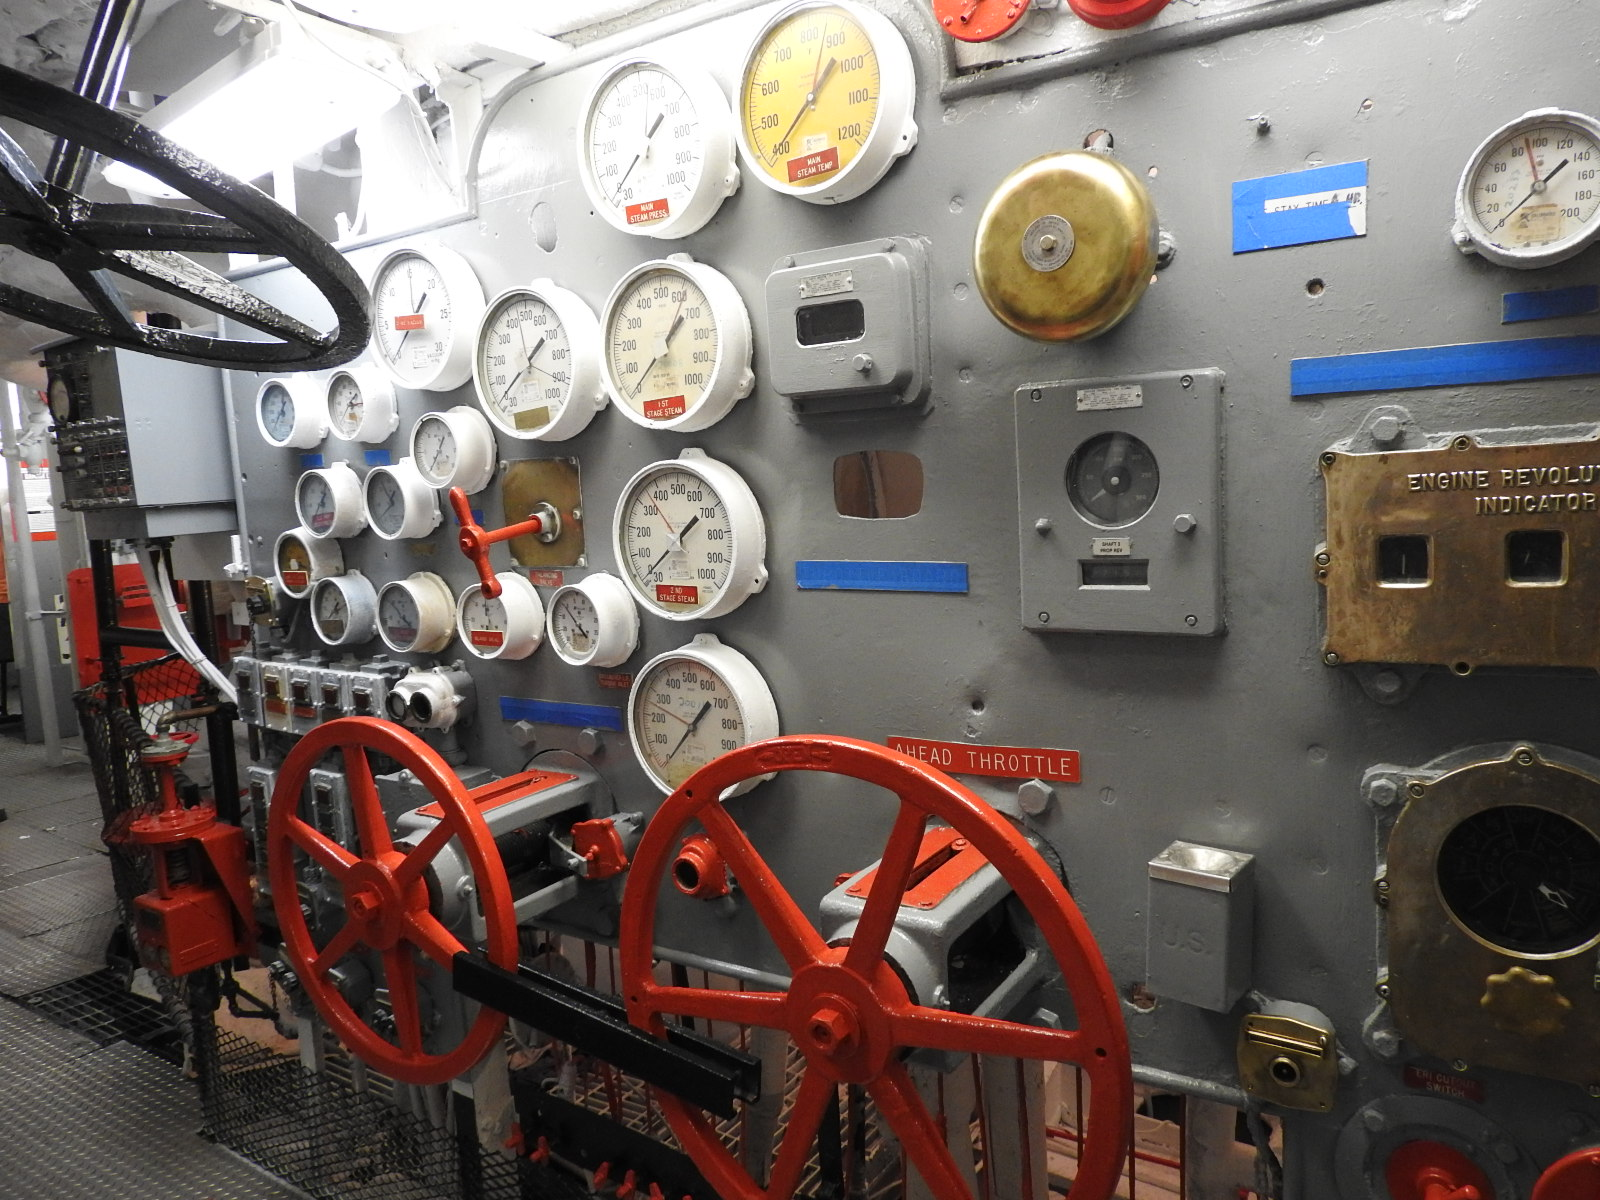 Texas Steam Engine Diagram Wire Data Schema Pin Labeled On Pinterest Uss Room Pictures To Pinsdaddy Of A How Works